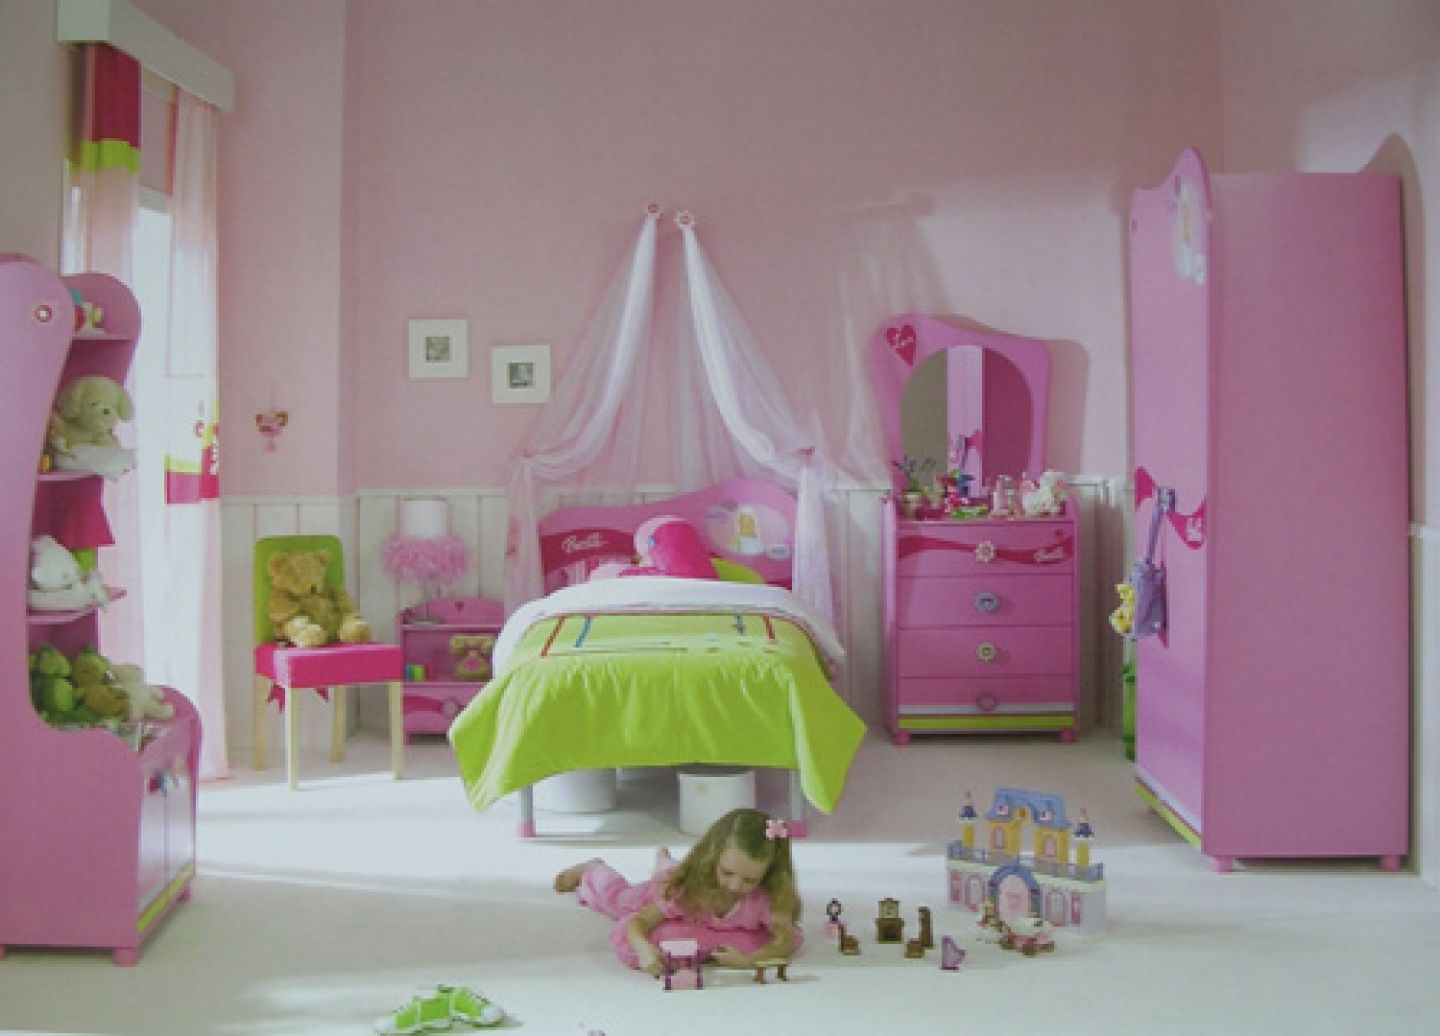 Kids Bedroom Ideas Kids Bedroom Pinky Decoration Inspiration Girls Bedroom Sets Decorating Ideas For Little